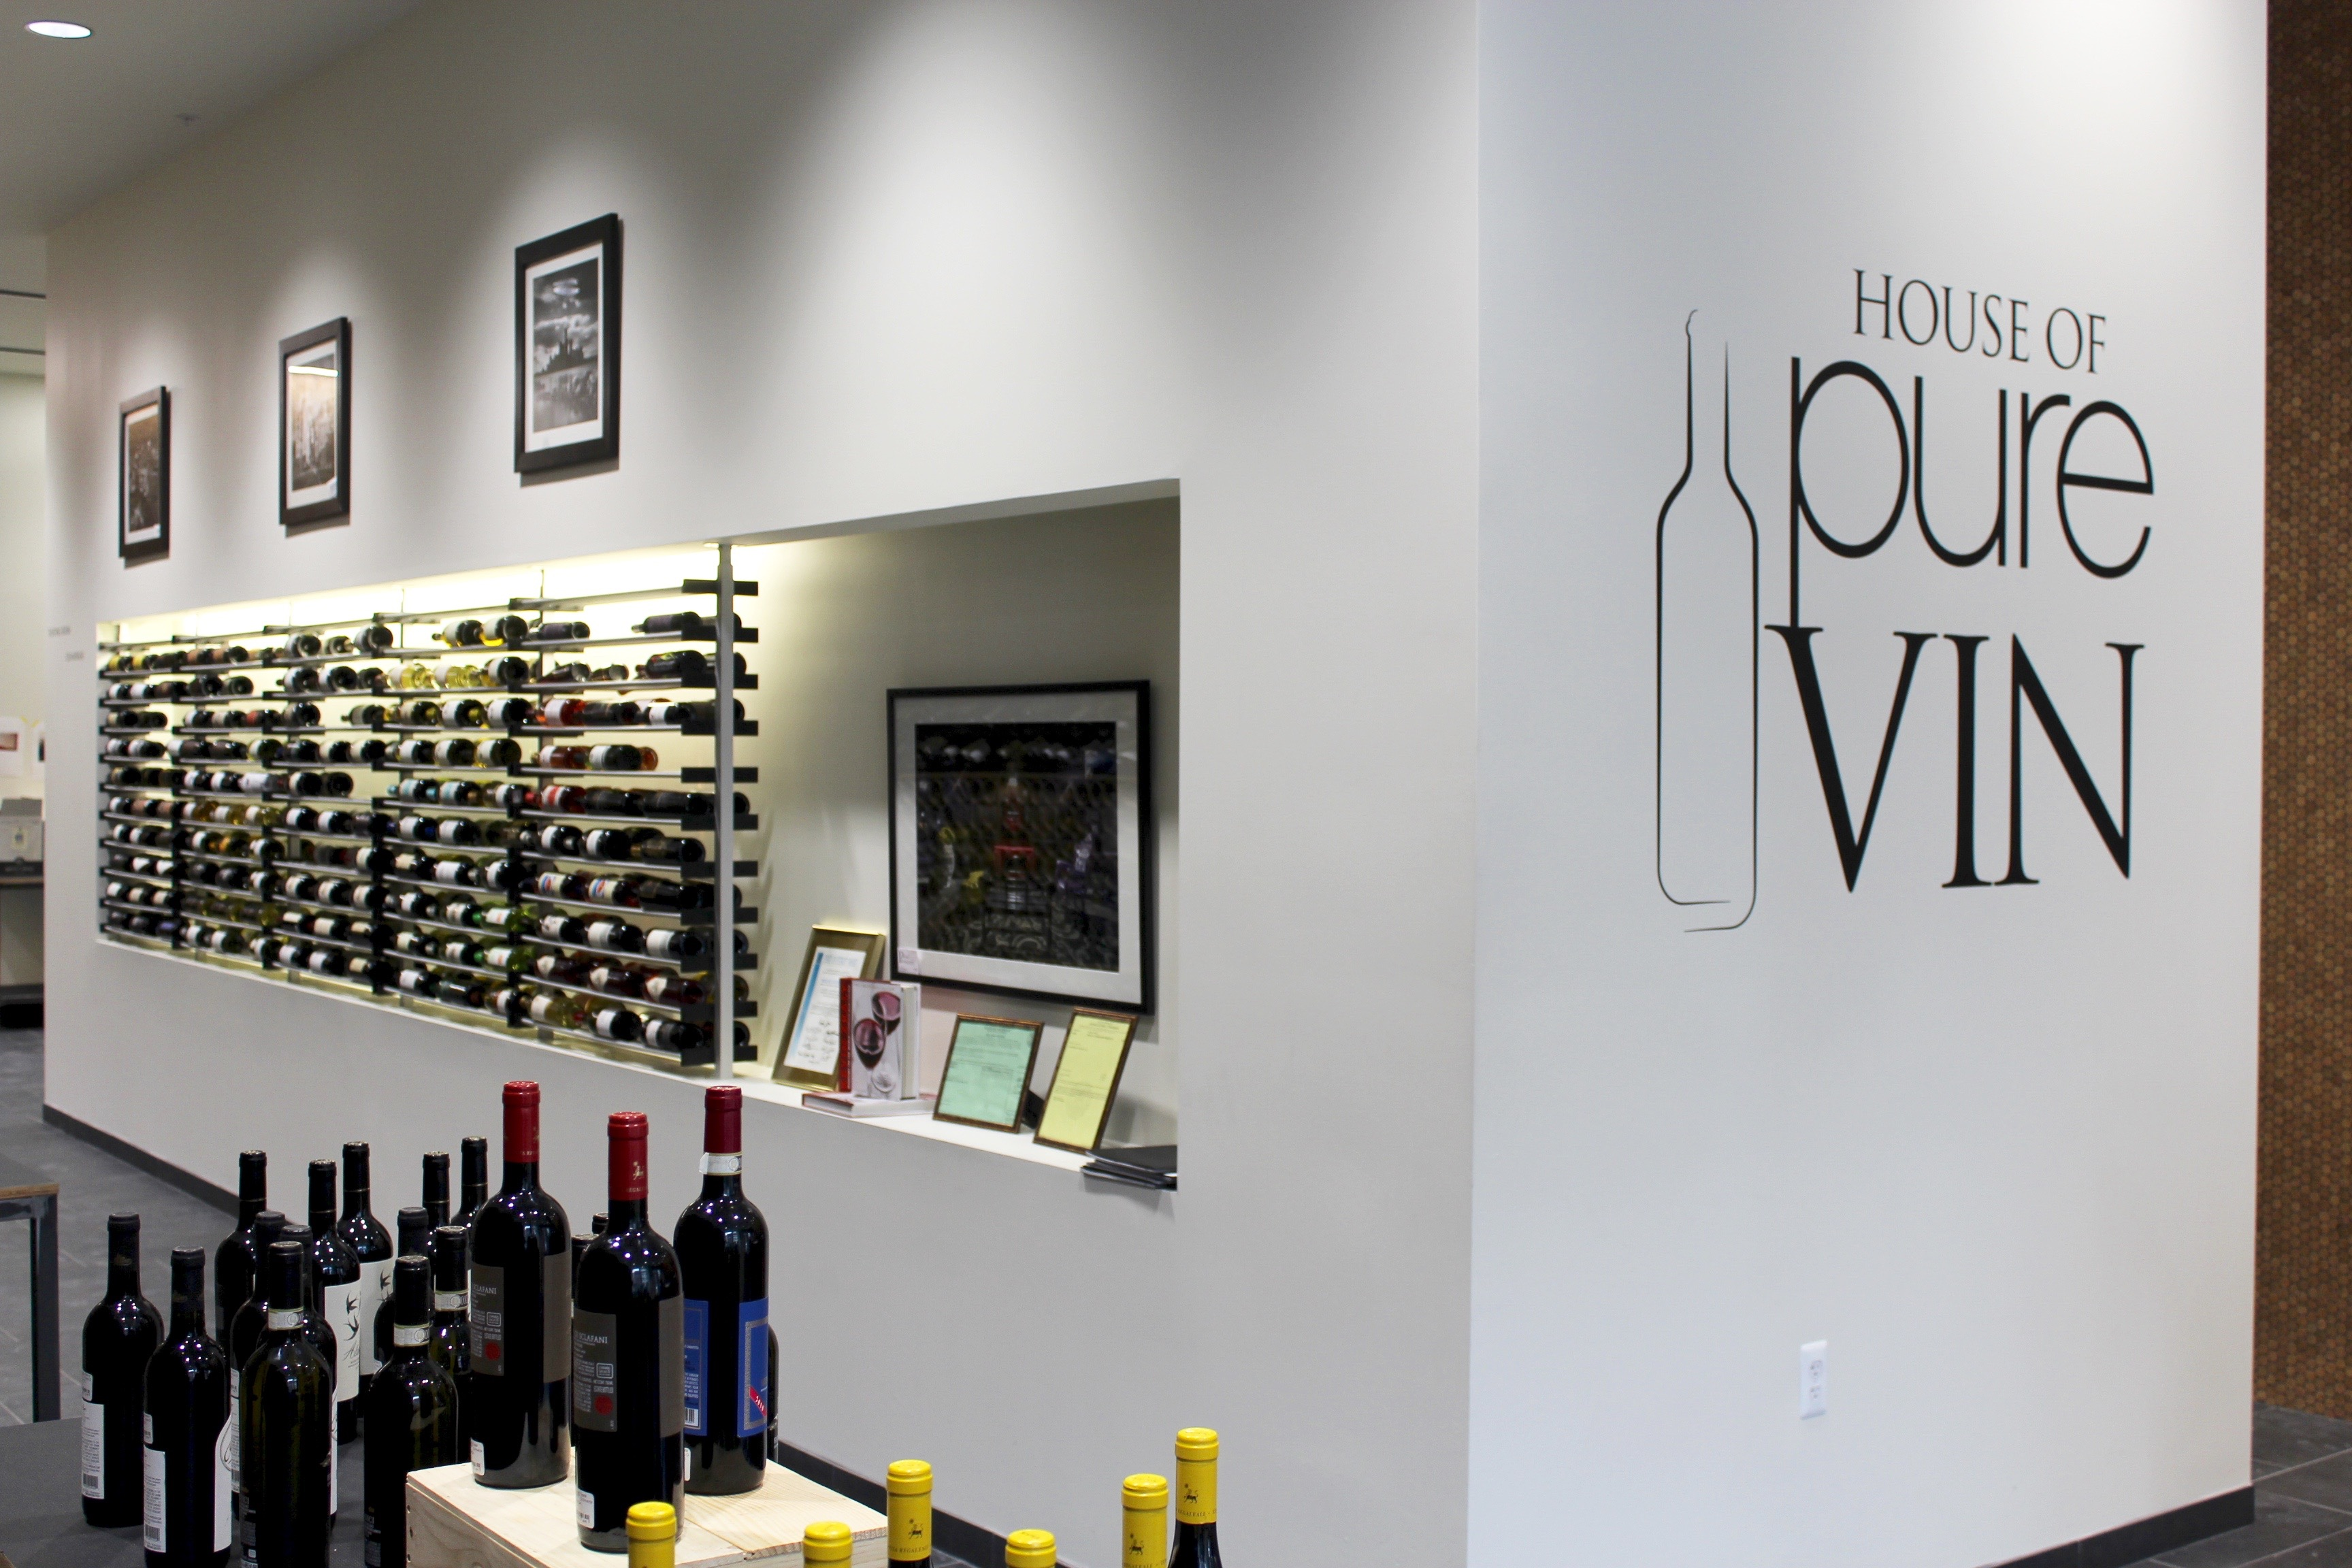 Small Business Snapshot: House of Pure Vin